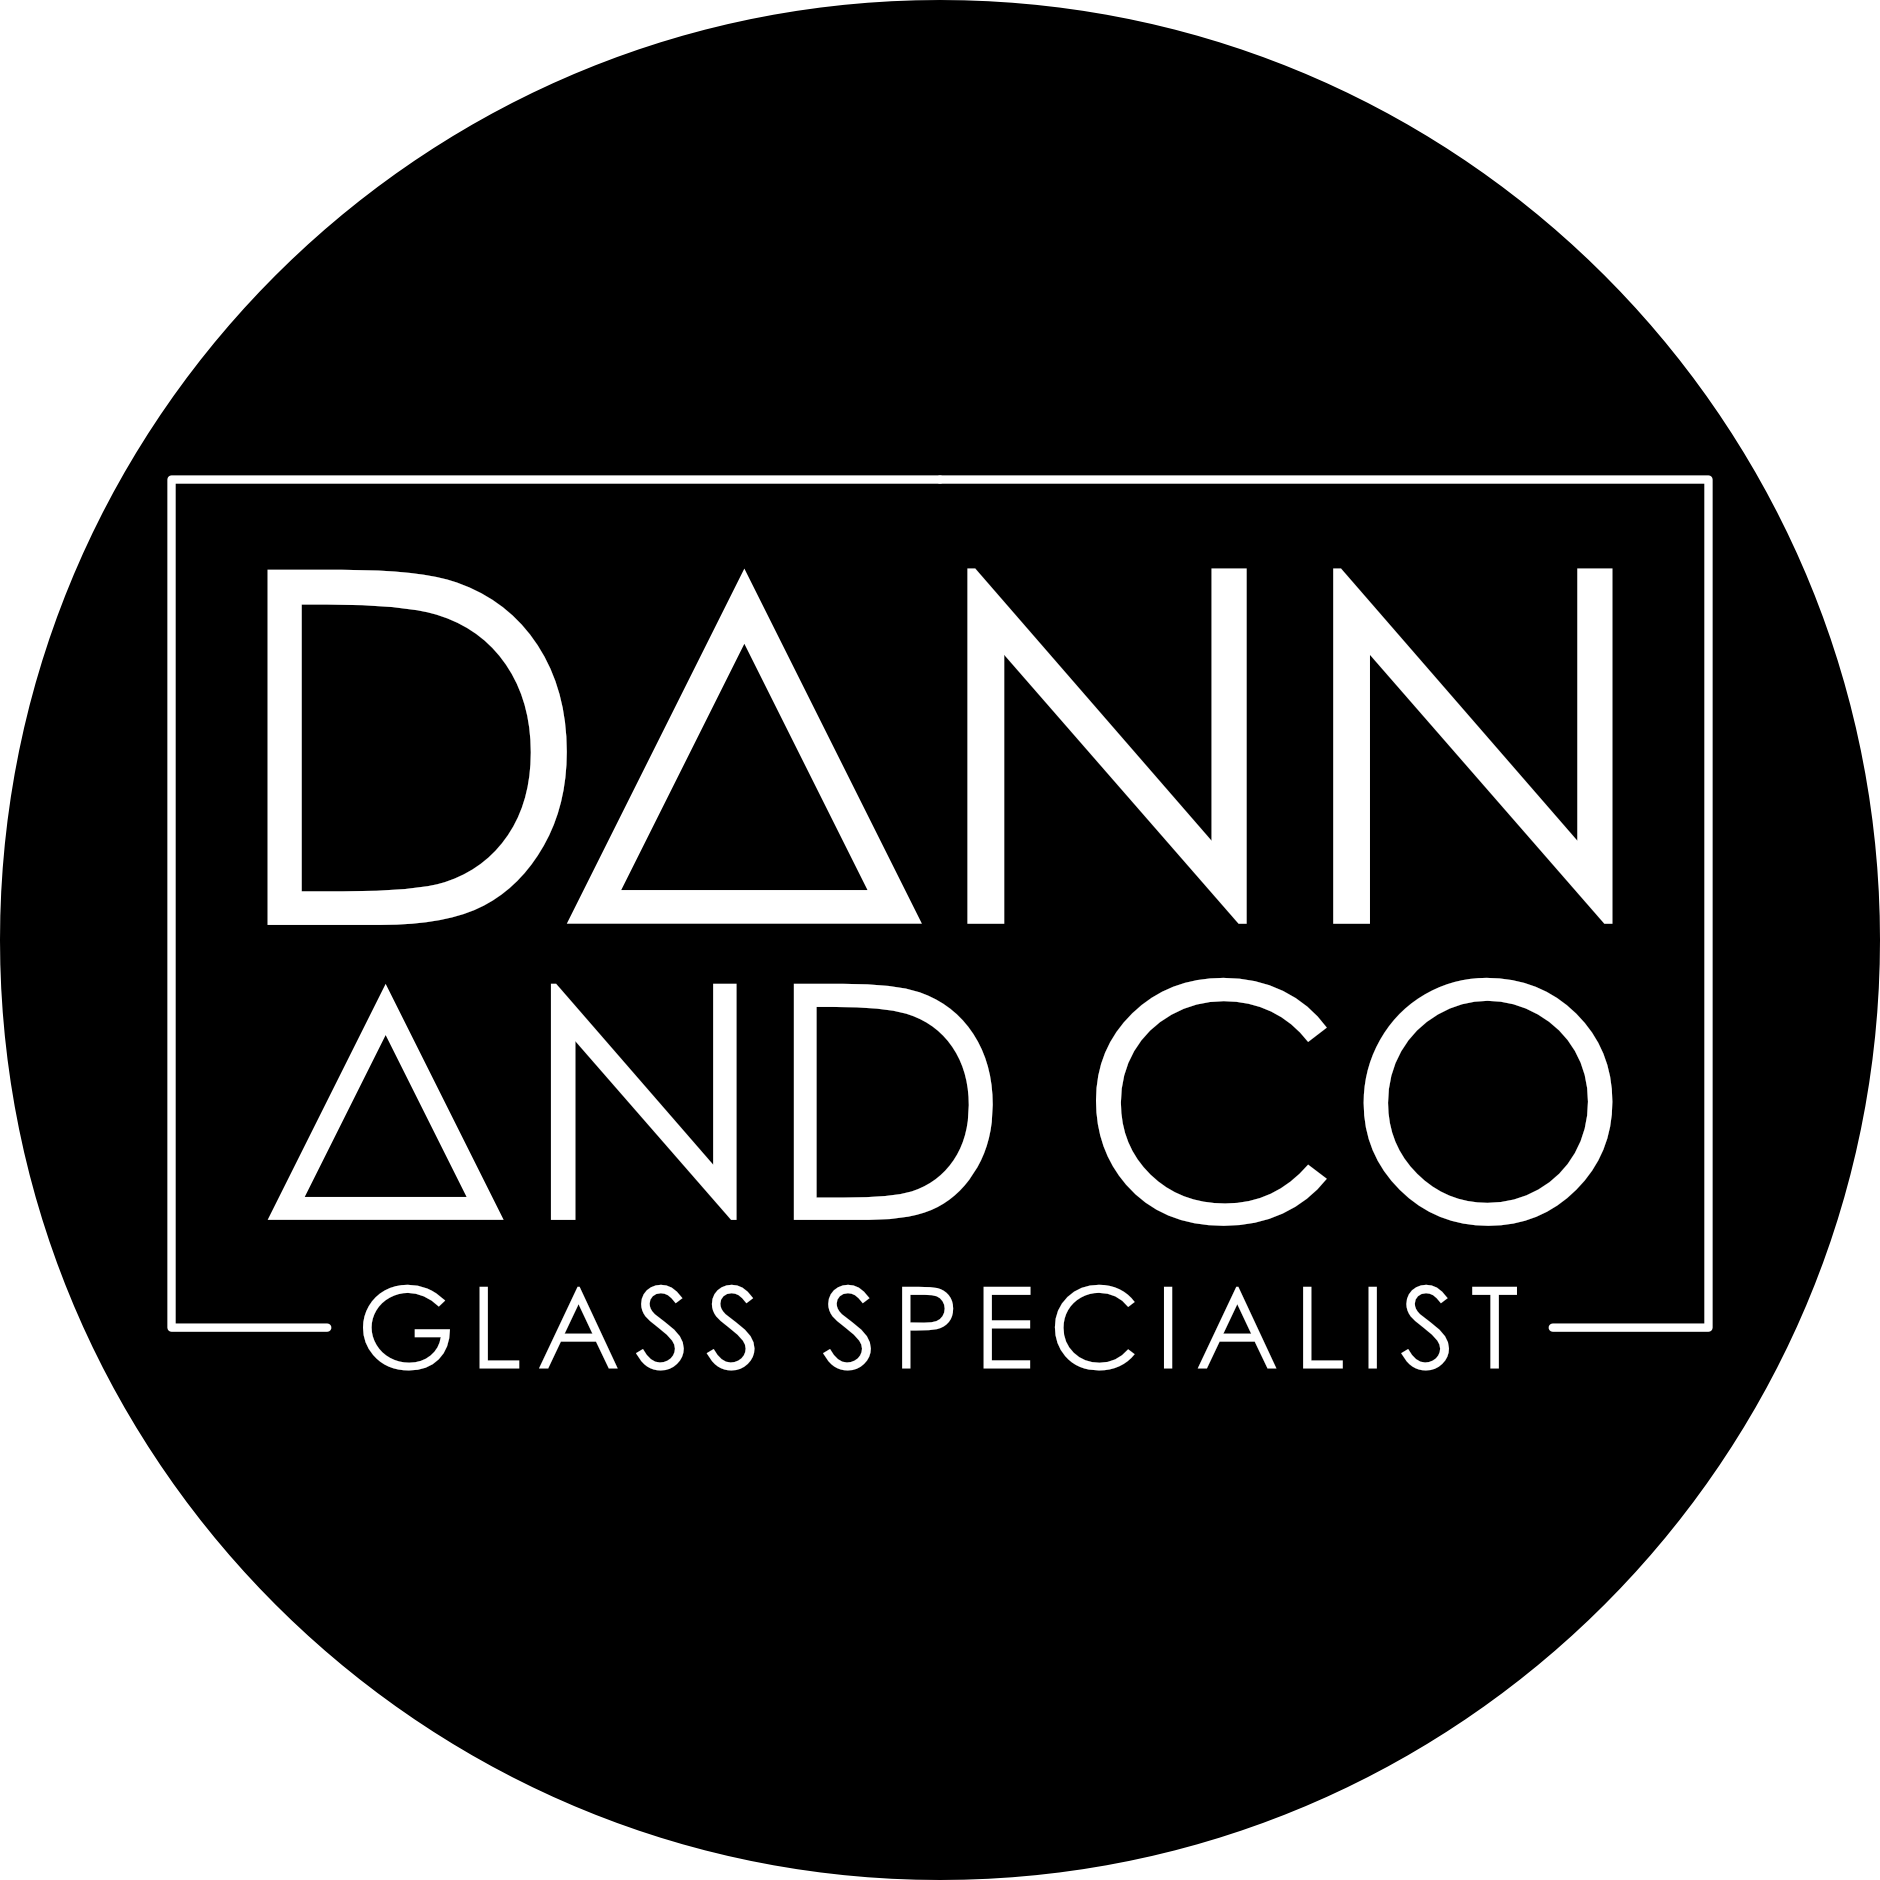 Dann & Co - Glass Specialist - Facebook Logo (1)